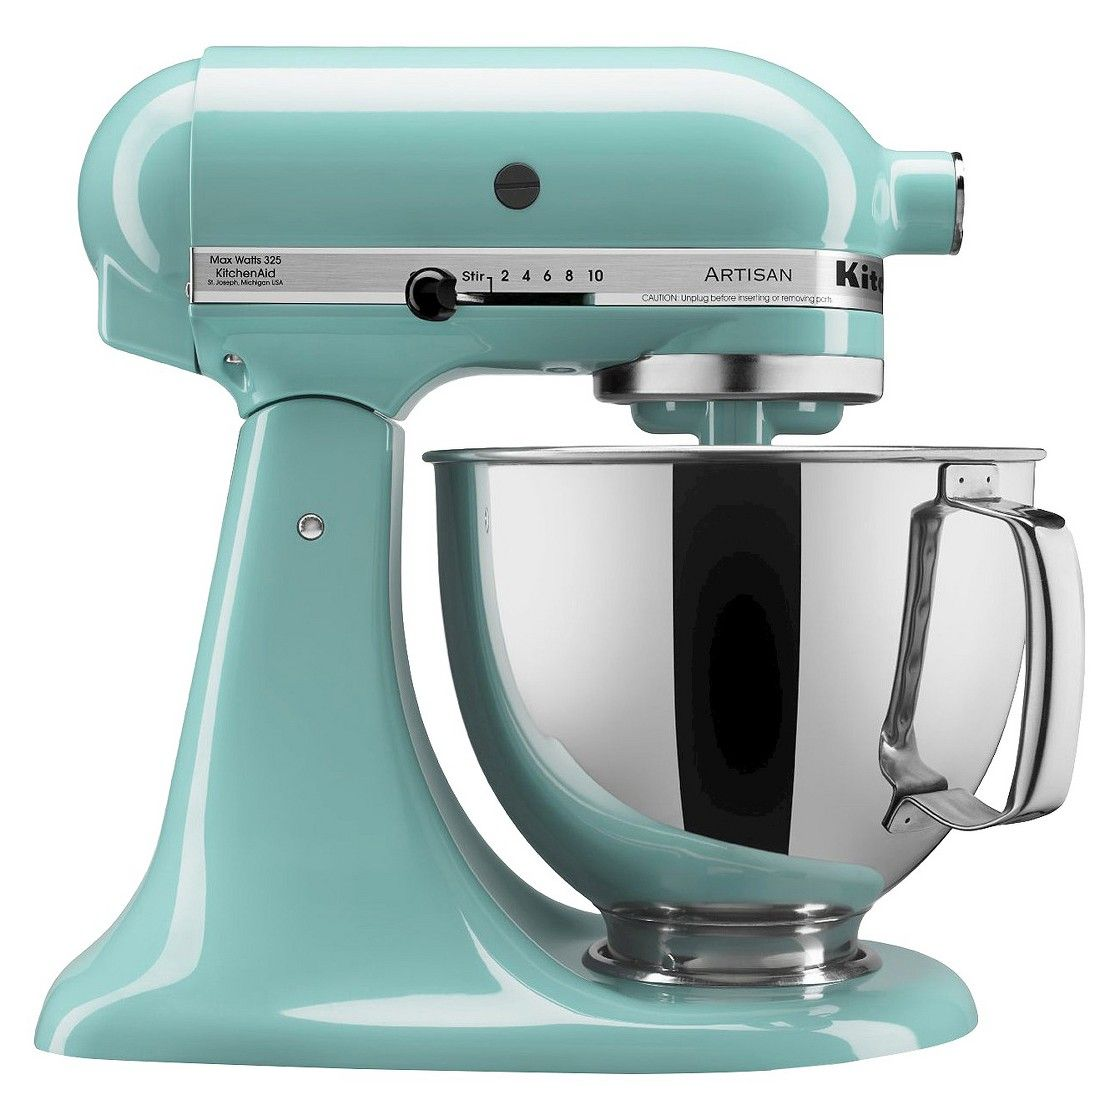 KitchenAid Artisan 5 Qt Stand Mixer KSM150 | A beautiful kitchen ...